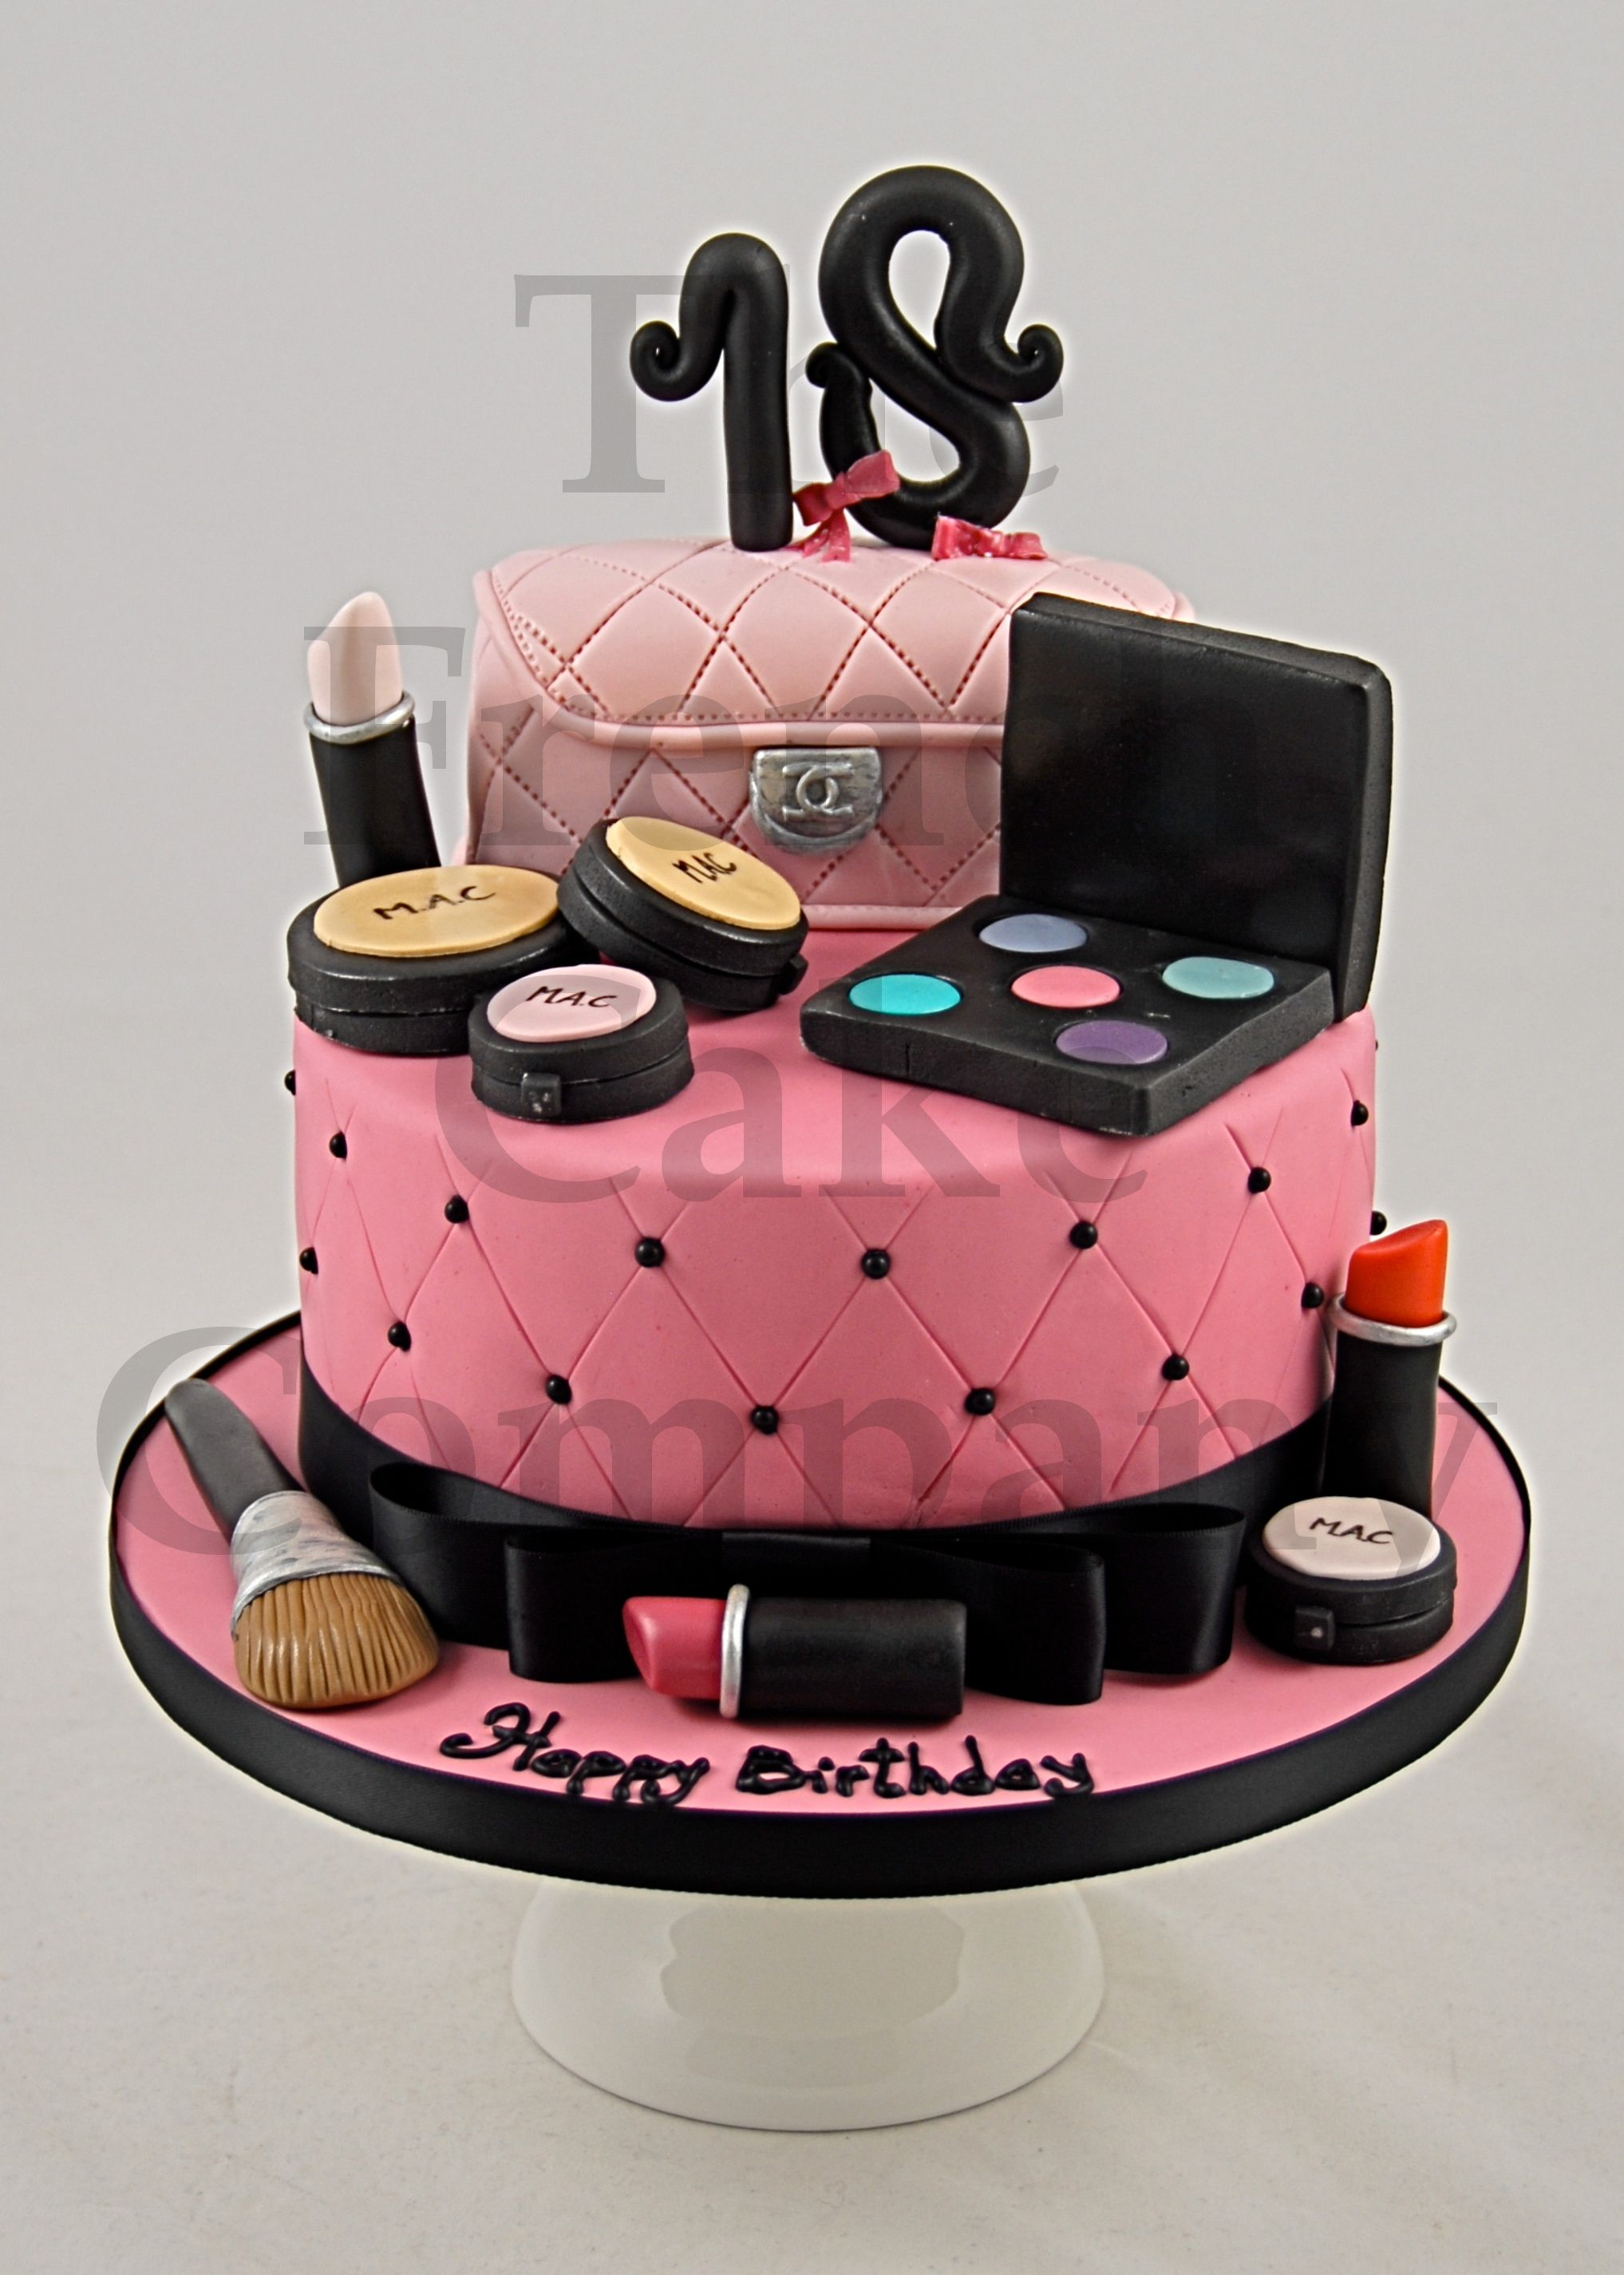 Cake for teenagers Creative Cakes Ideas Pinterest